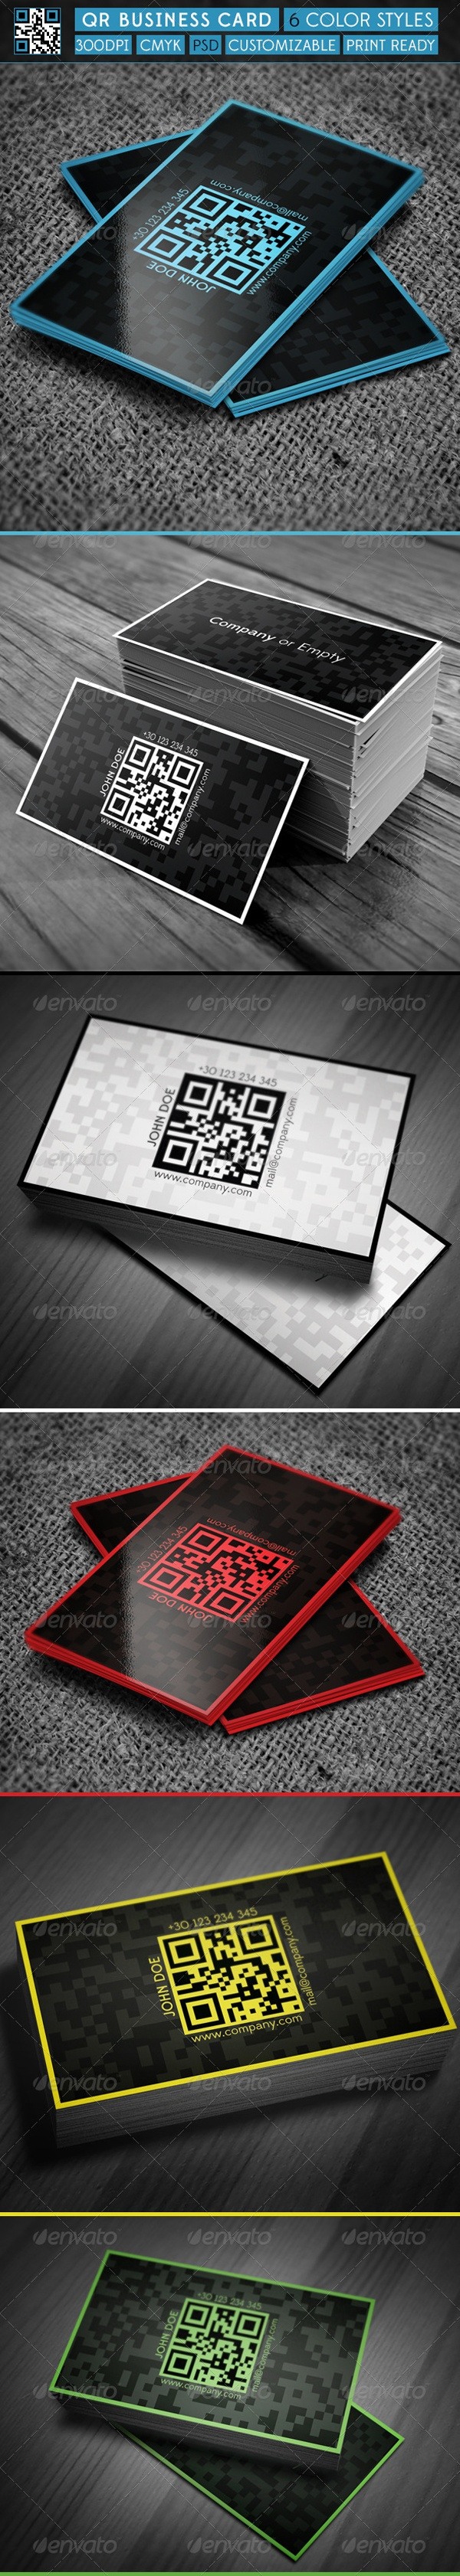 29 best tiny prints corporate holiday cards images on pinterest latest business cards 25 magicingreecefo Image collections